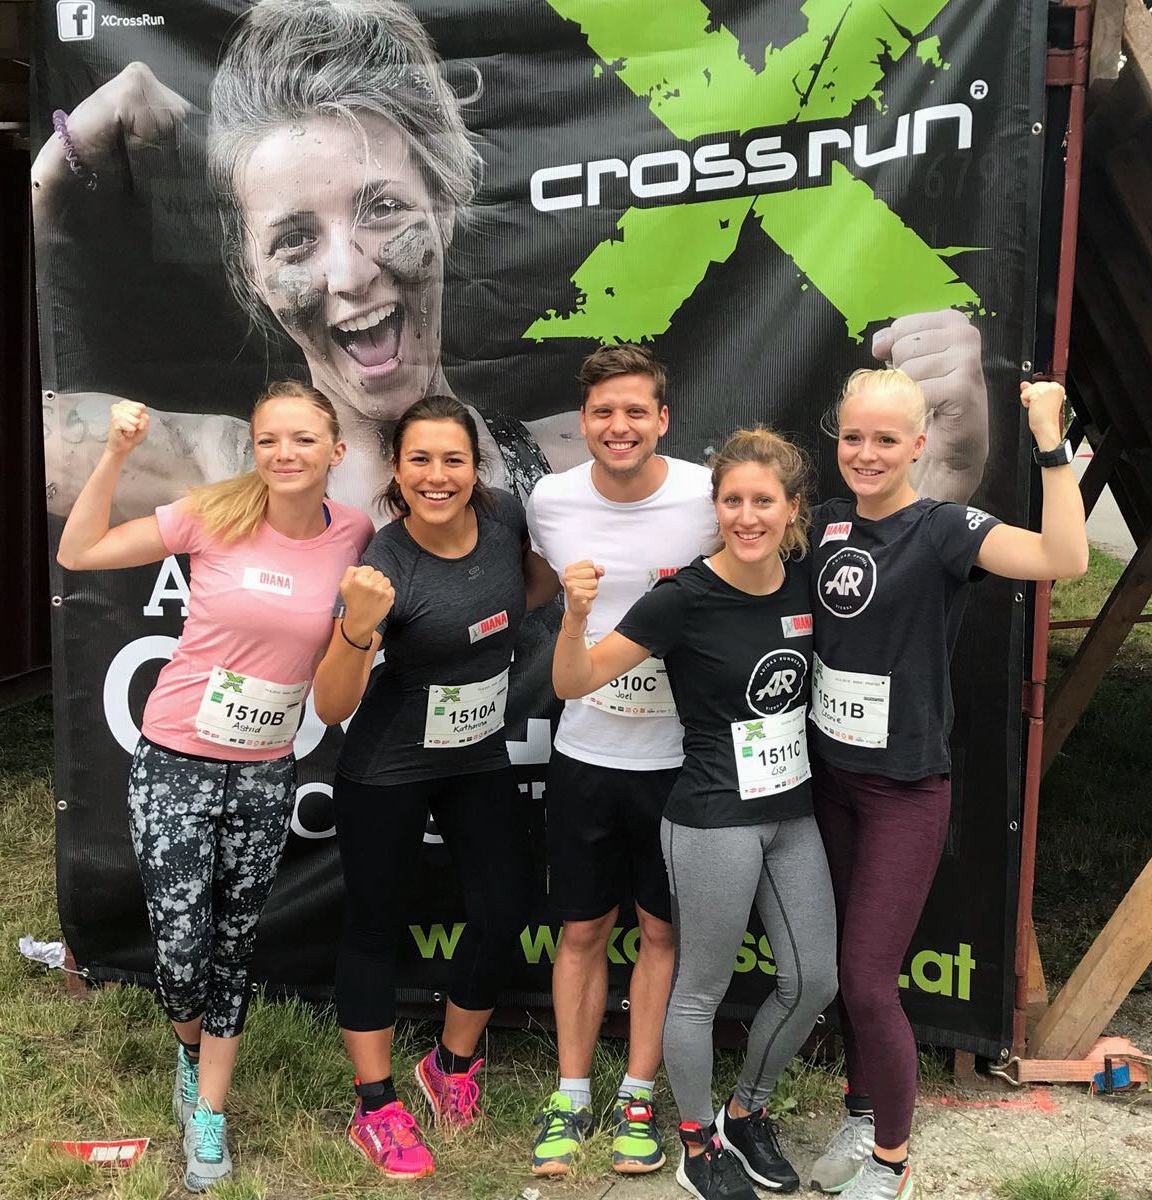 X-Cross Run 2018